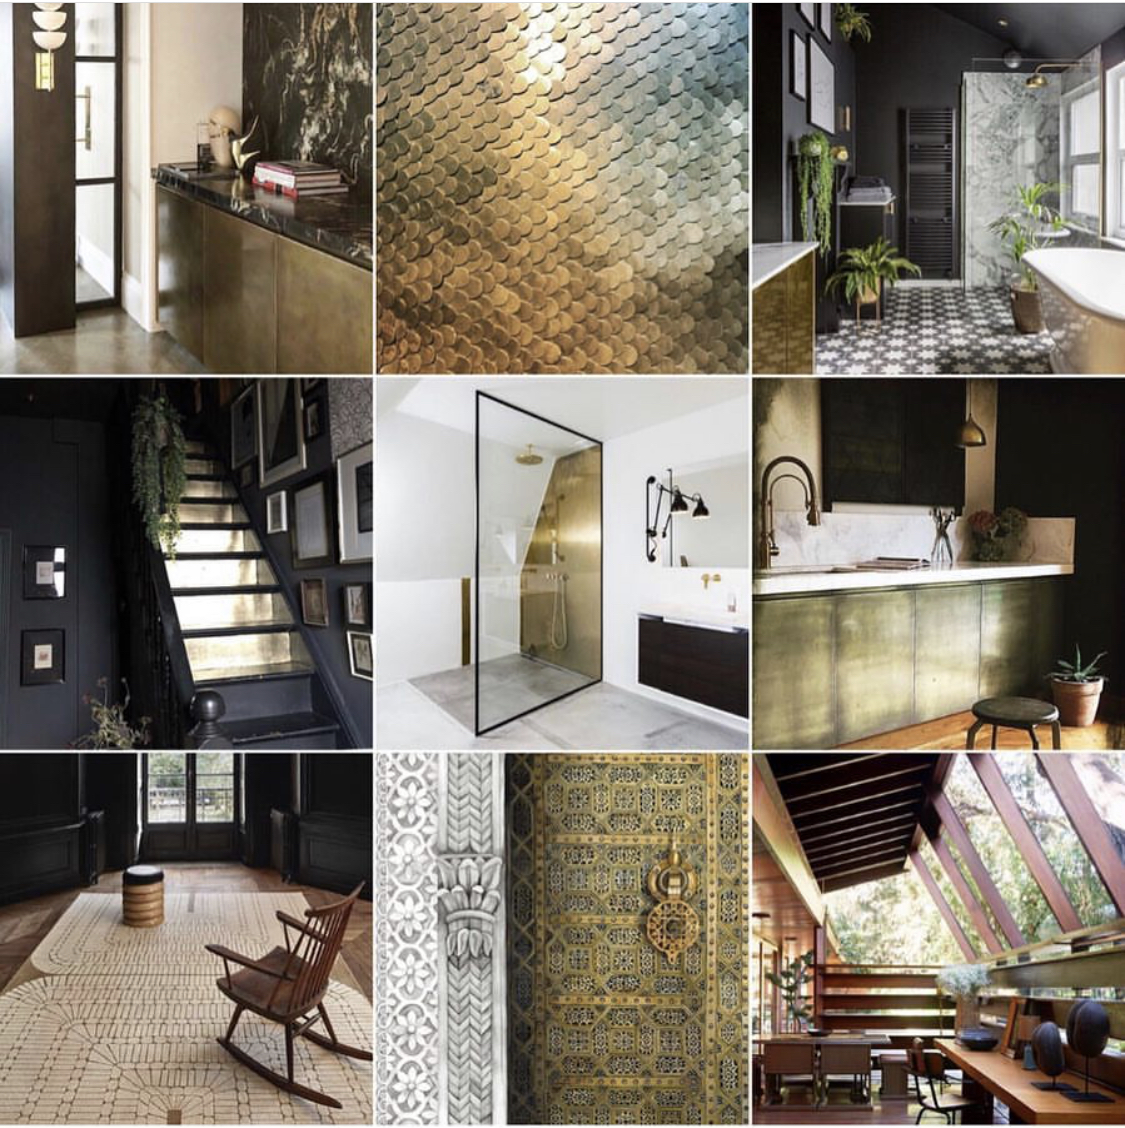 Brass @michelleogundehin IG moodboard (click through for full credits)